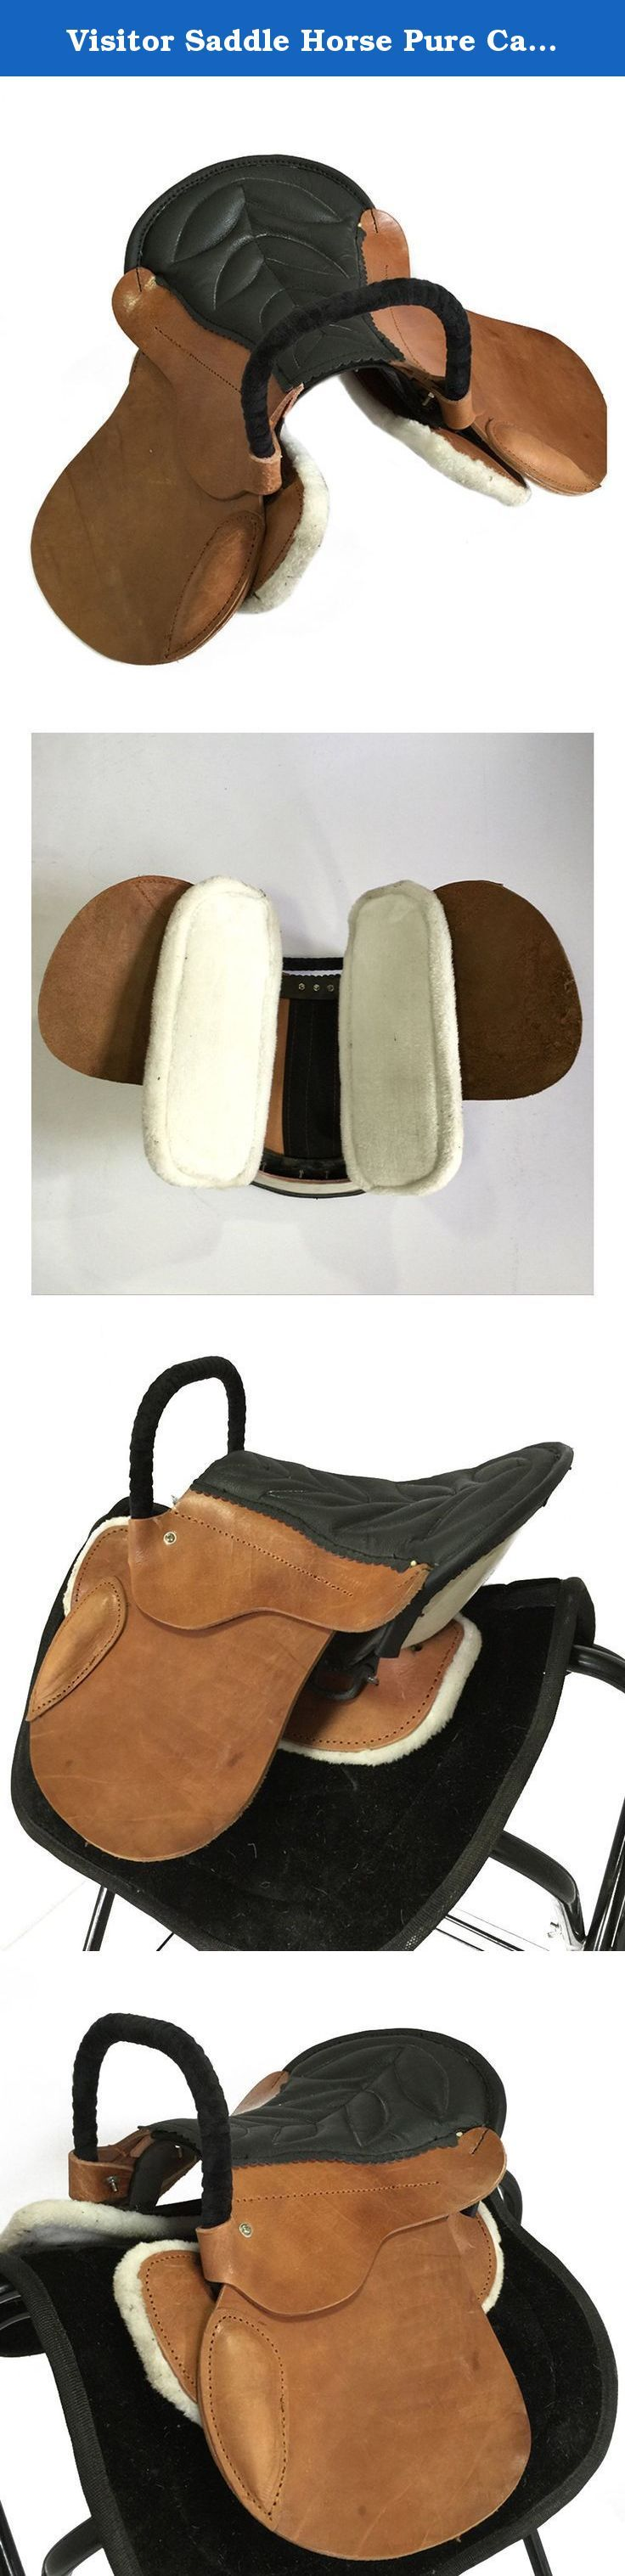 Visitor Saddle Horse Pure Cattle Leather Equestrian Supplies. Features: High cost performance Manual made of cattle leather Improved from old army saddle Comfortable riding Keep away from wet environment and blazing sun Specifications: Color:yellow brown Size:35cm Suitable to horses of normal stature with 0.8-1m shoulder Weight:7kg .